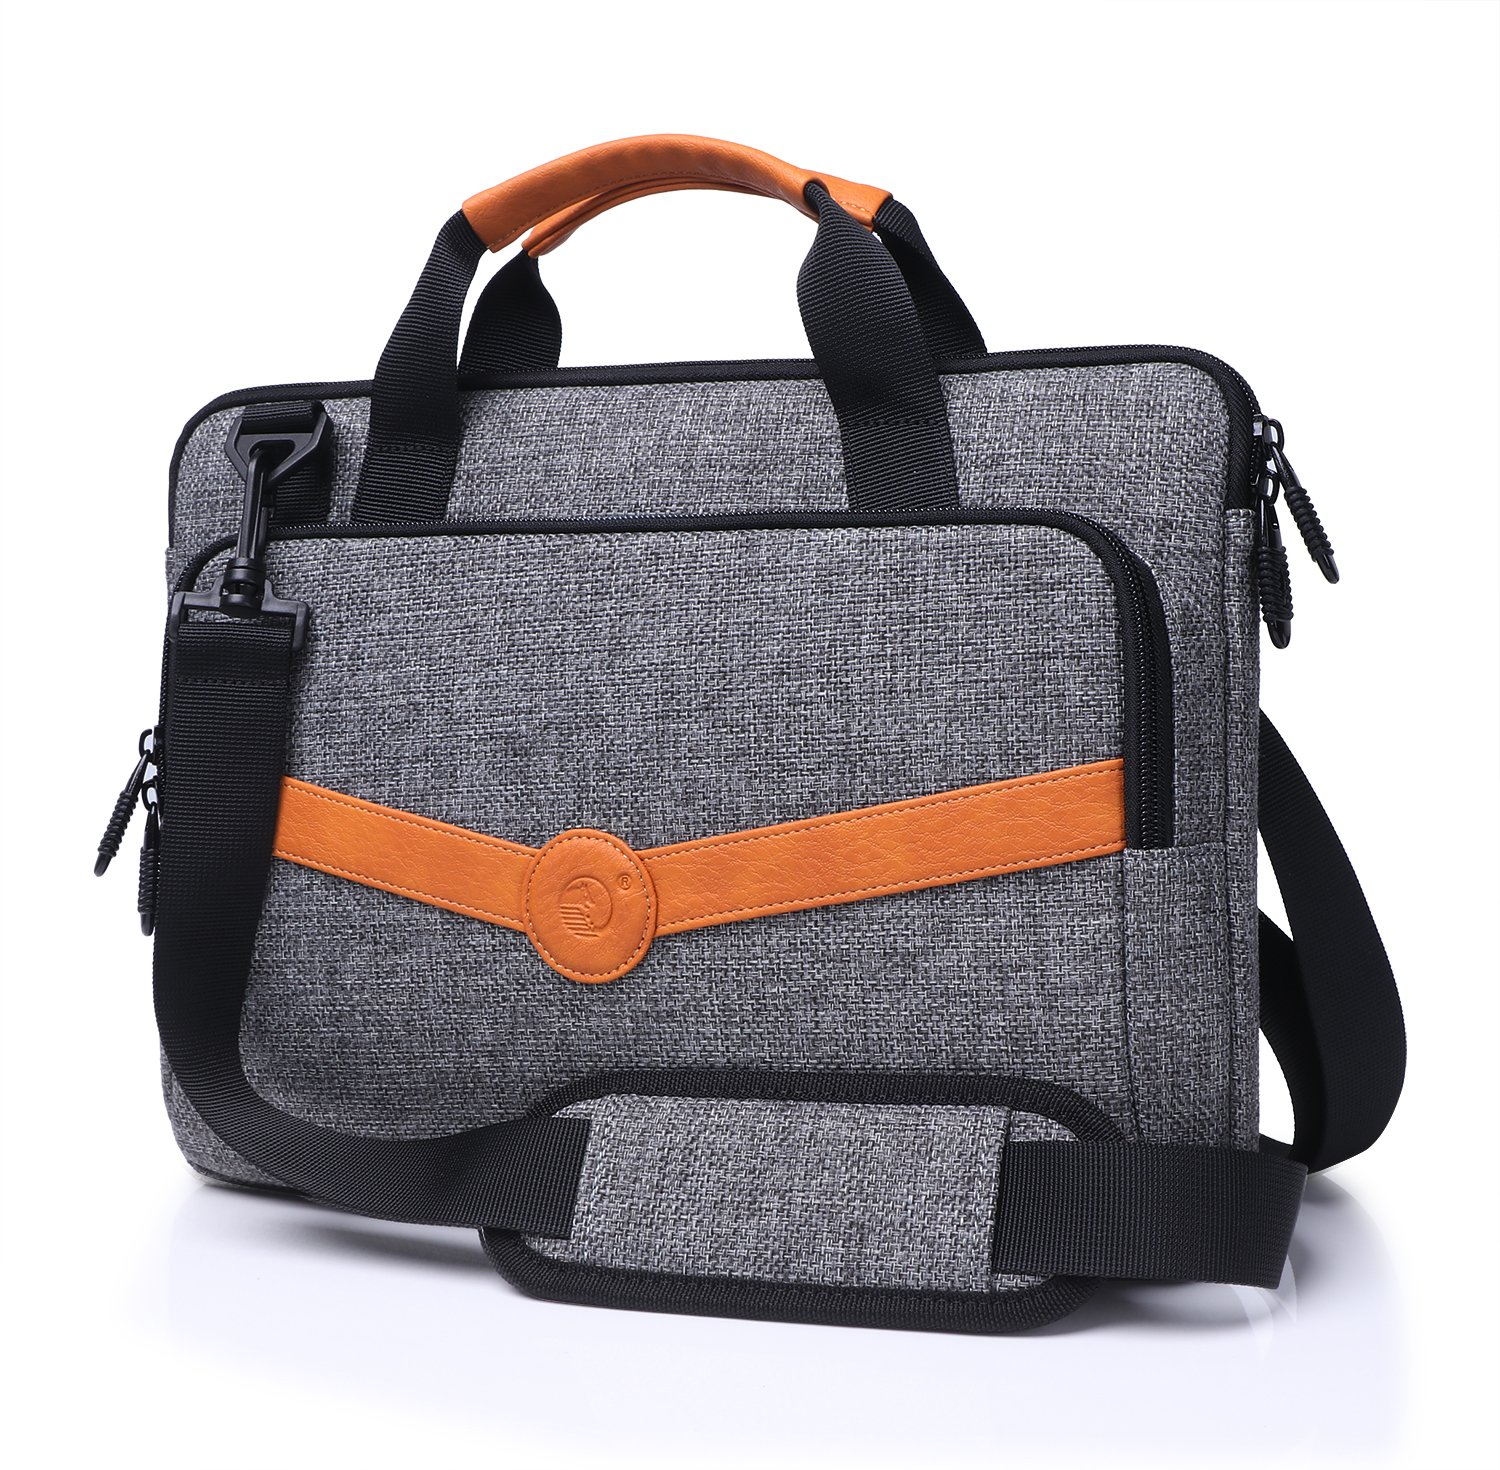 FYY Functional Series Canvas Sleeve Bag with Practical Pockets for Surface Book / Surface Book i7 - B-Grey